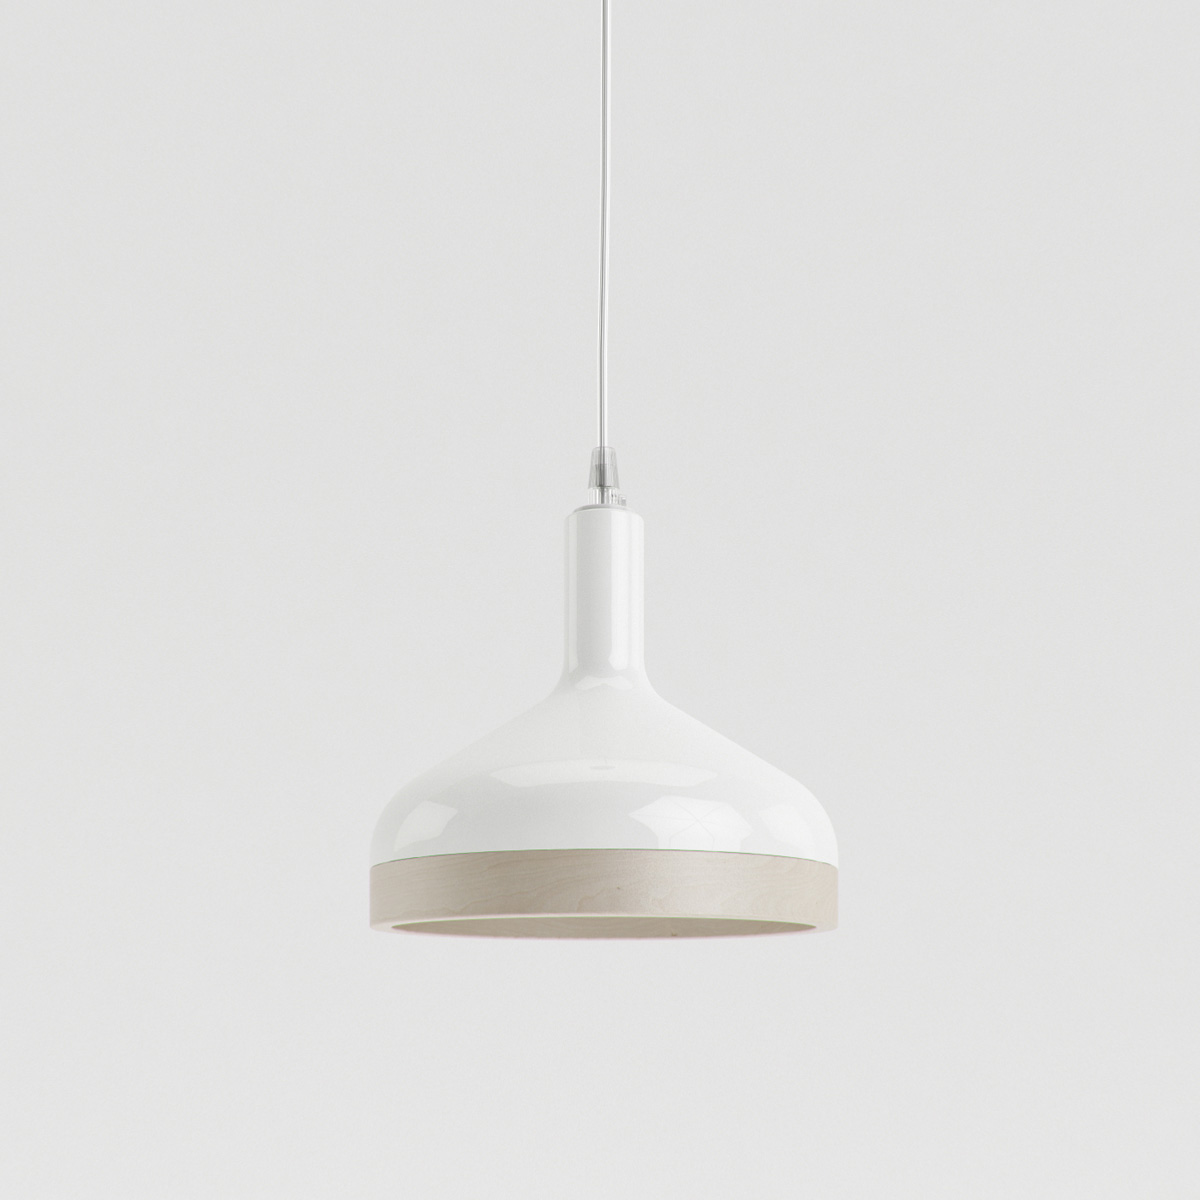 Wood and porcelain pendant lamp